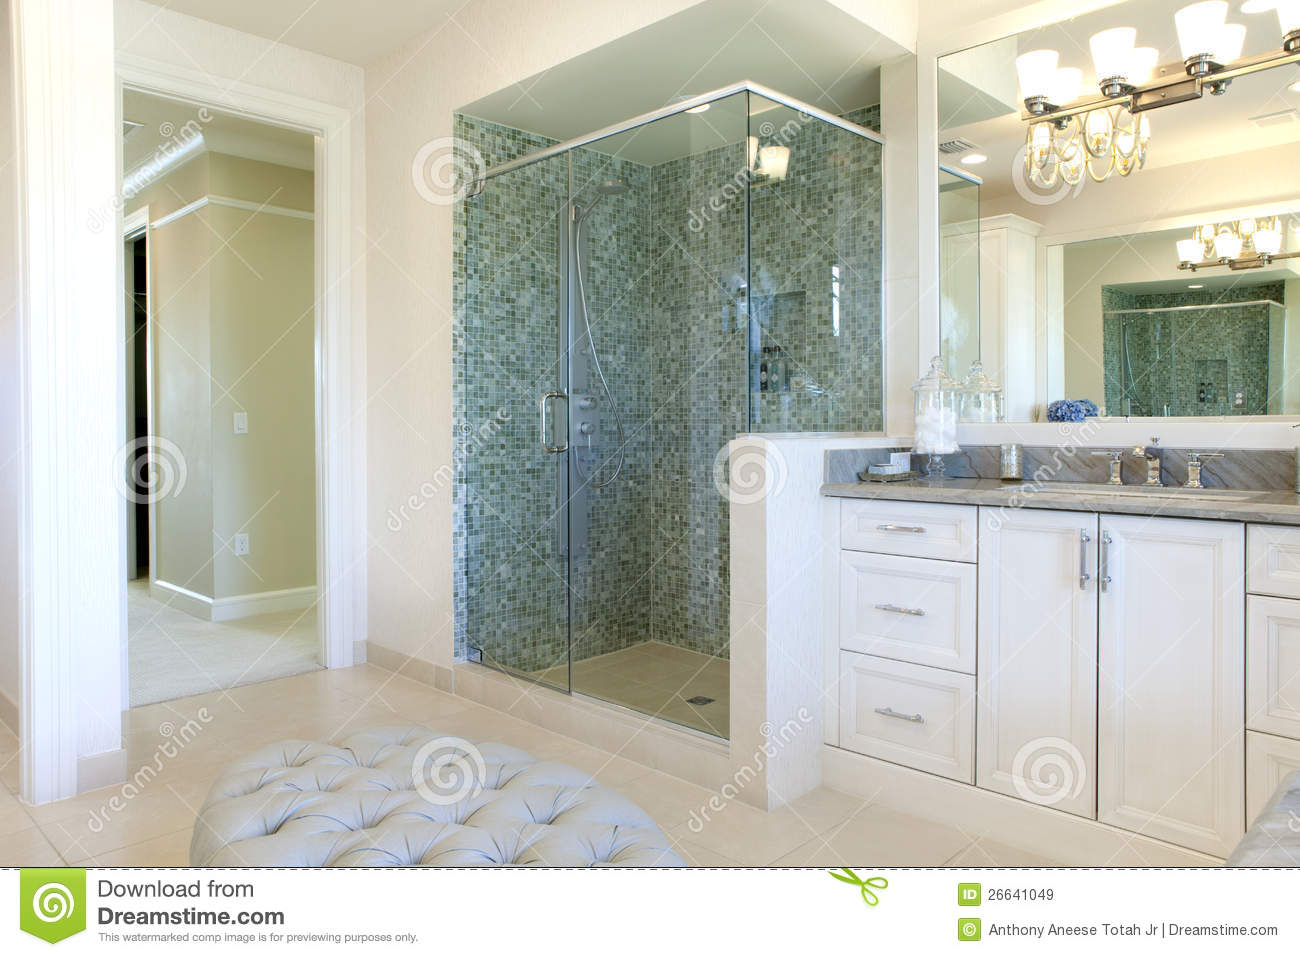 Nyc apartment bathroom: modern bathroom interior design of ...